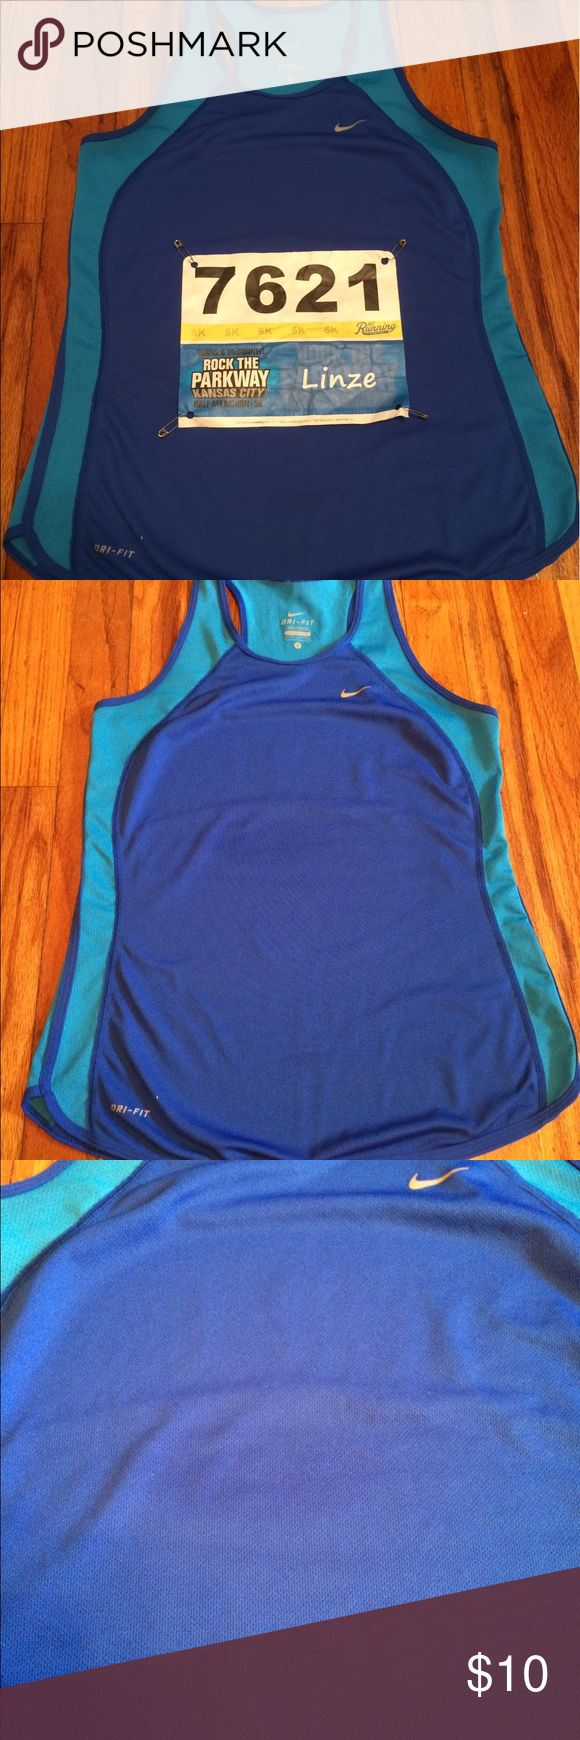 🆕 Listing Nike dri fit tank top Nike dri fit razor back tank top, size small. Small stain on front, I wore this top running road races so I just always covered it up with my bib number. Its a detergent stain 🙈Awesome top, just doesn't fit me anymore. Smoke free home, sold as is. 🌸I accept offers, so please offer below🌸 🚫TRADES🚫 Nike Tops Tank Tops